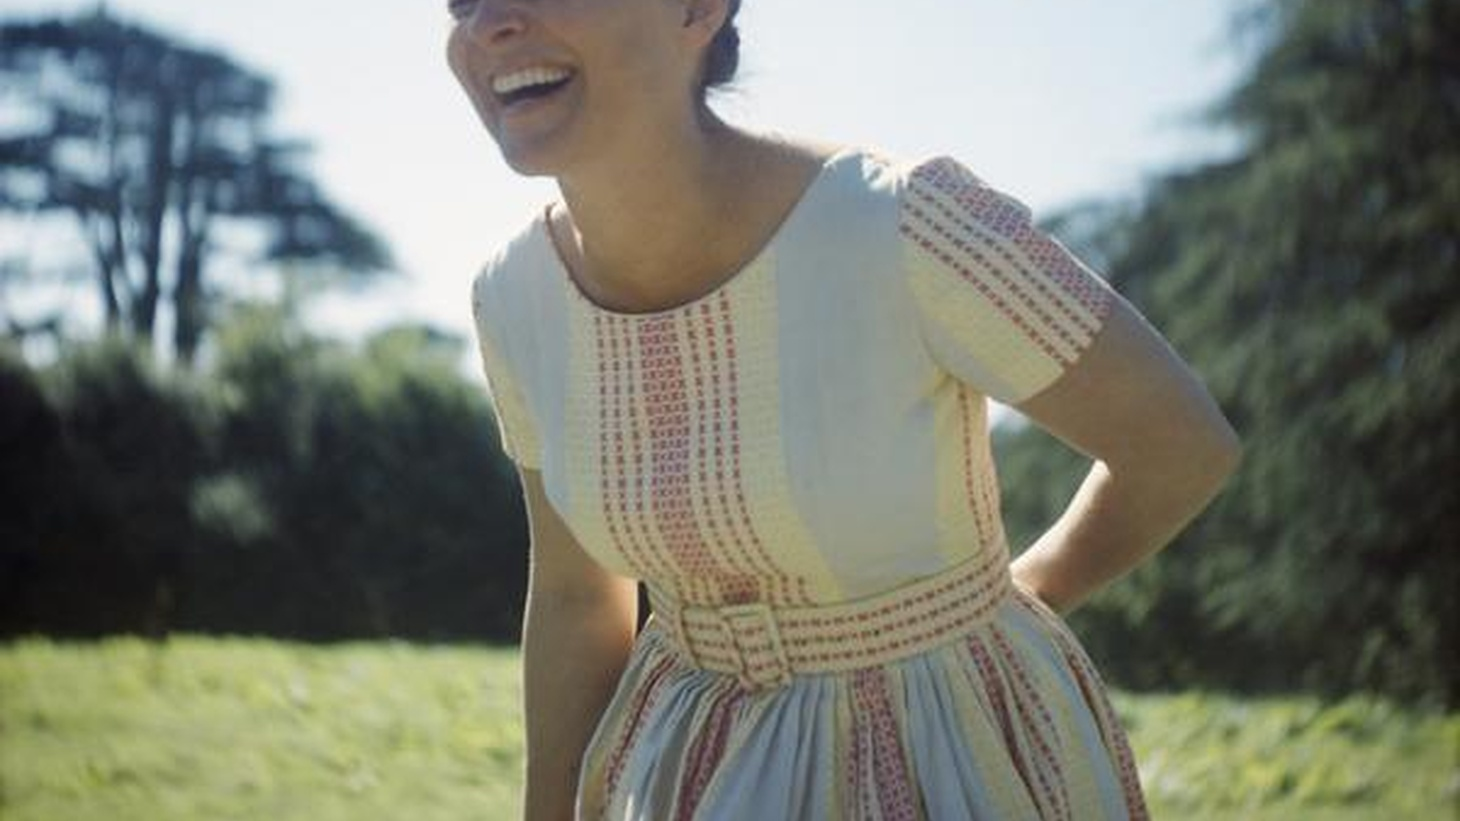 Icelandic diva Emiliana Torrini warms the studios with her new songs Morning Becomes Eclectic at 11:15am.